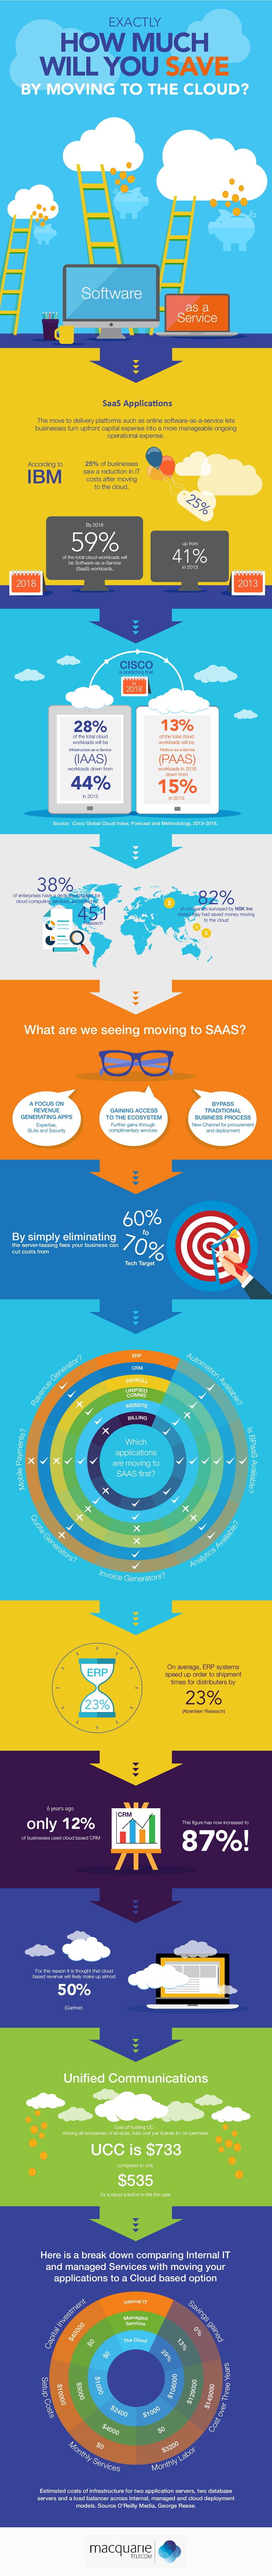 How Much Will You Save by Switching to SaaS? infographic